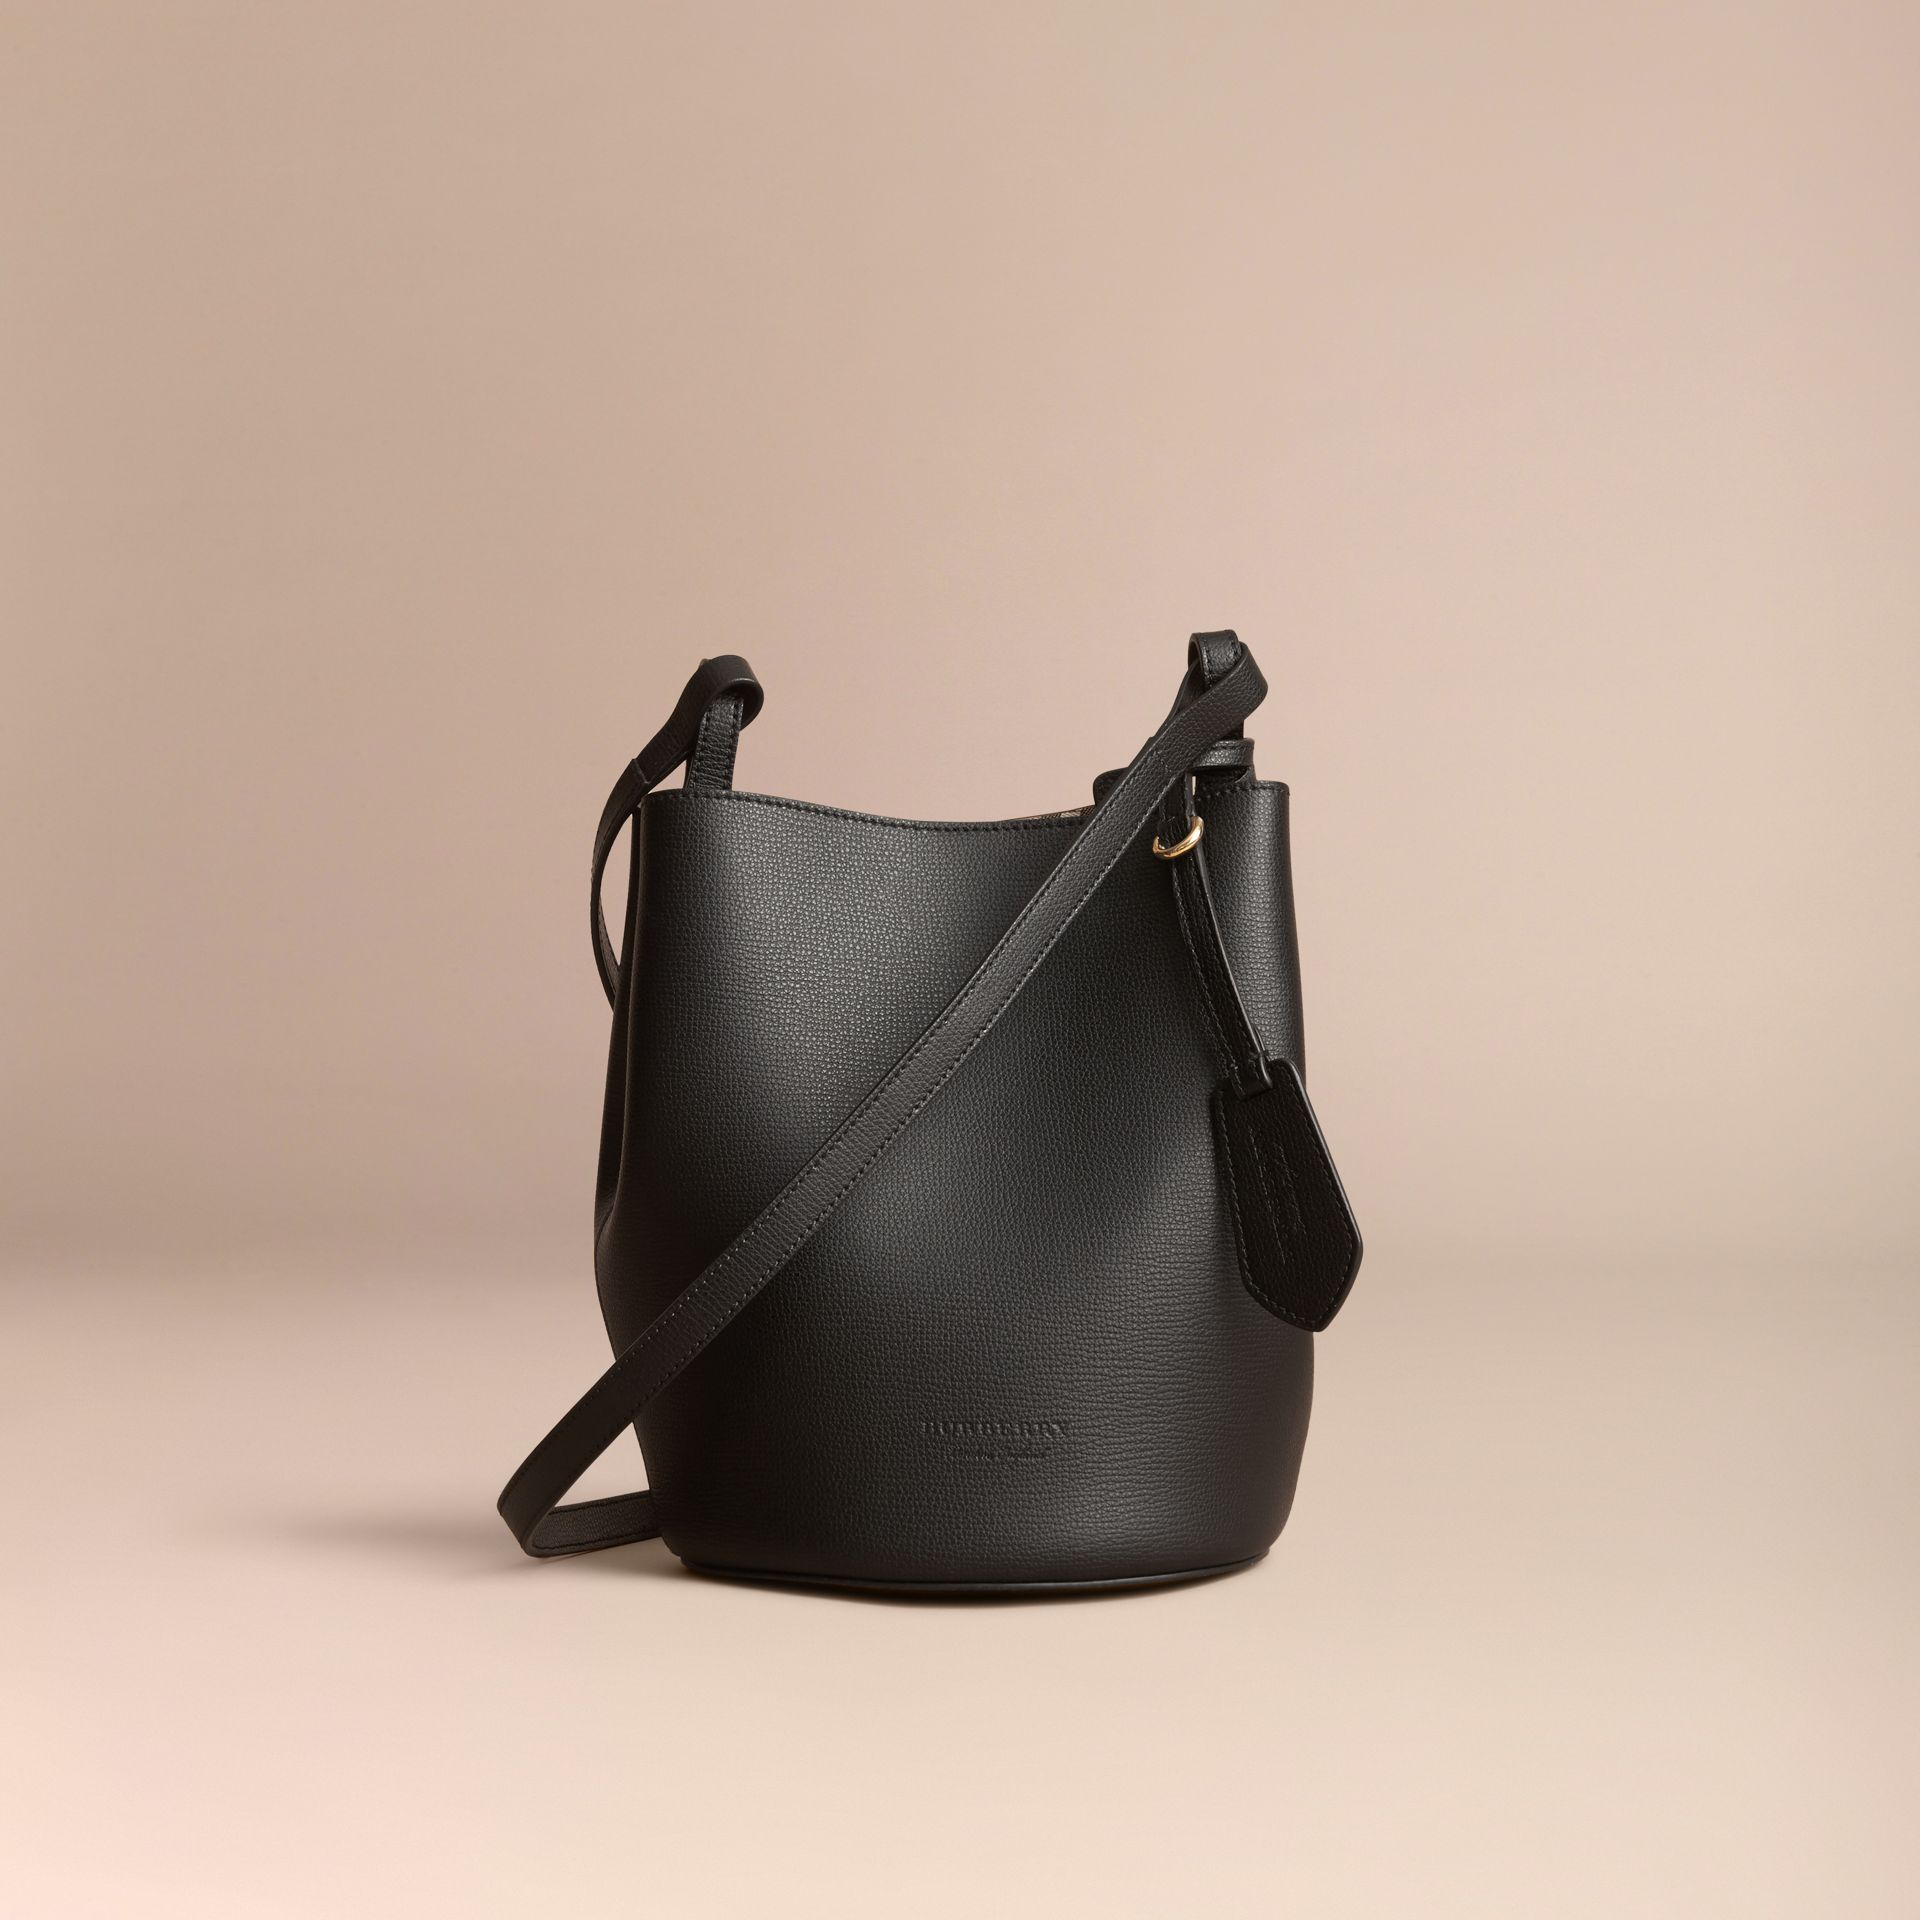 Leather and Haymarket Check Crossbody Bucket Bag in Black - Women | Burberry Australia - gallery image 7